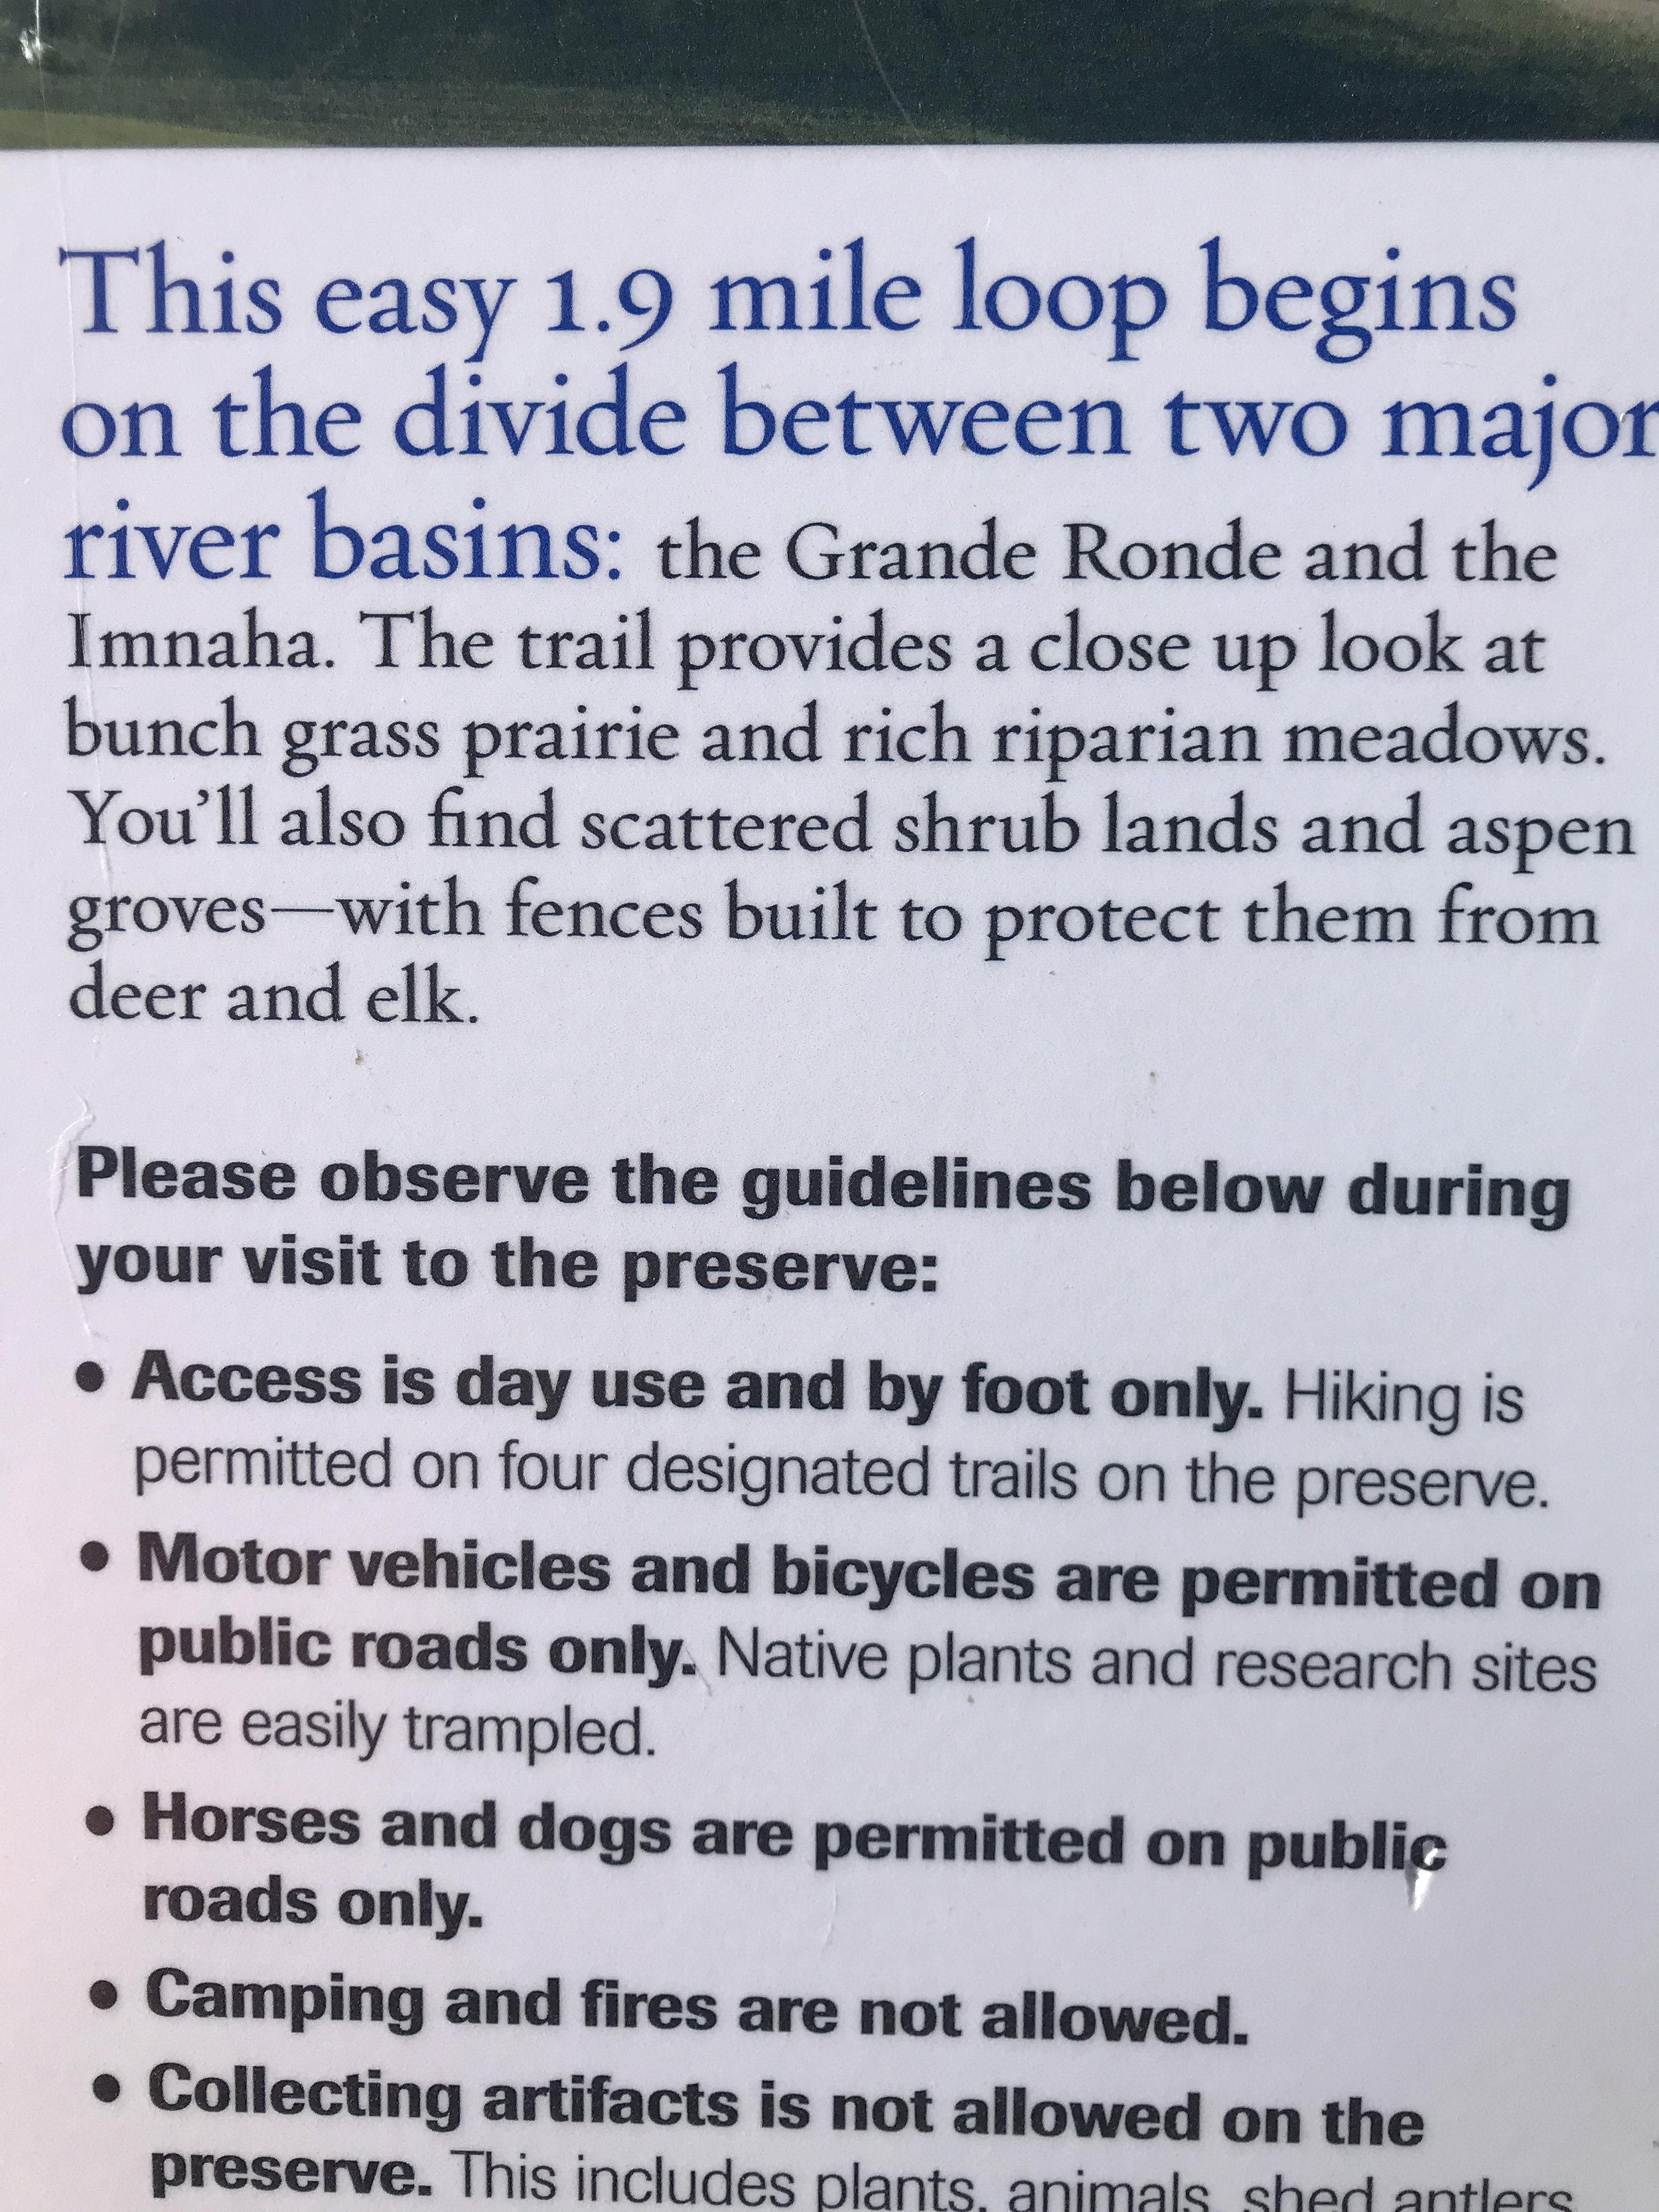 Noted:  1)  No dogs (ground-nesting birds, extreme sensitivity to disturbance).  2)  Day use only. And  3) how cool that this is the high divide between the huge Grande Ronde and Imnaha watersheds. Meaning, this is a high, expansive plain like a terrace above the major canyons you can't see, but can feel, nearby.